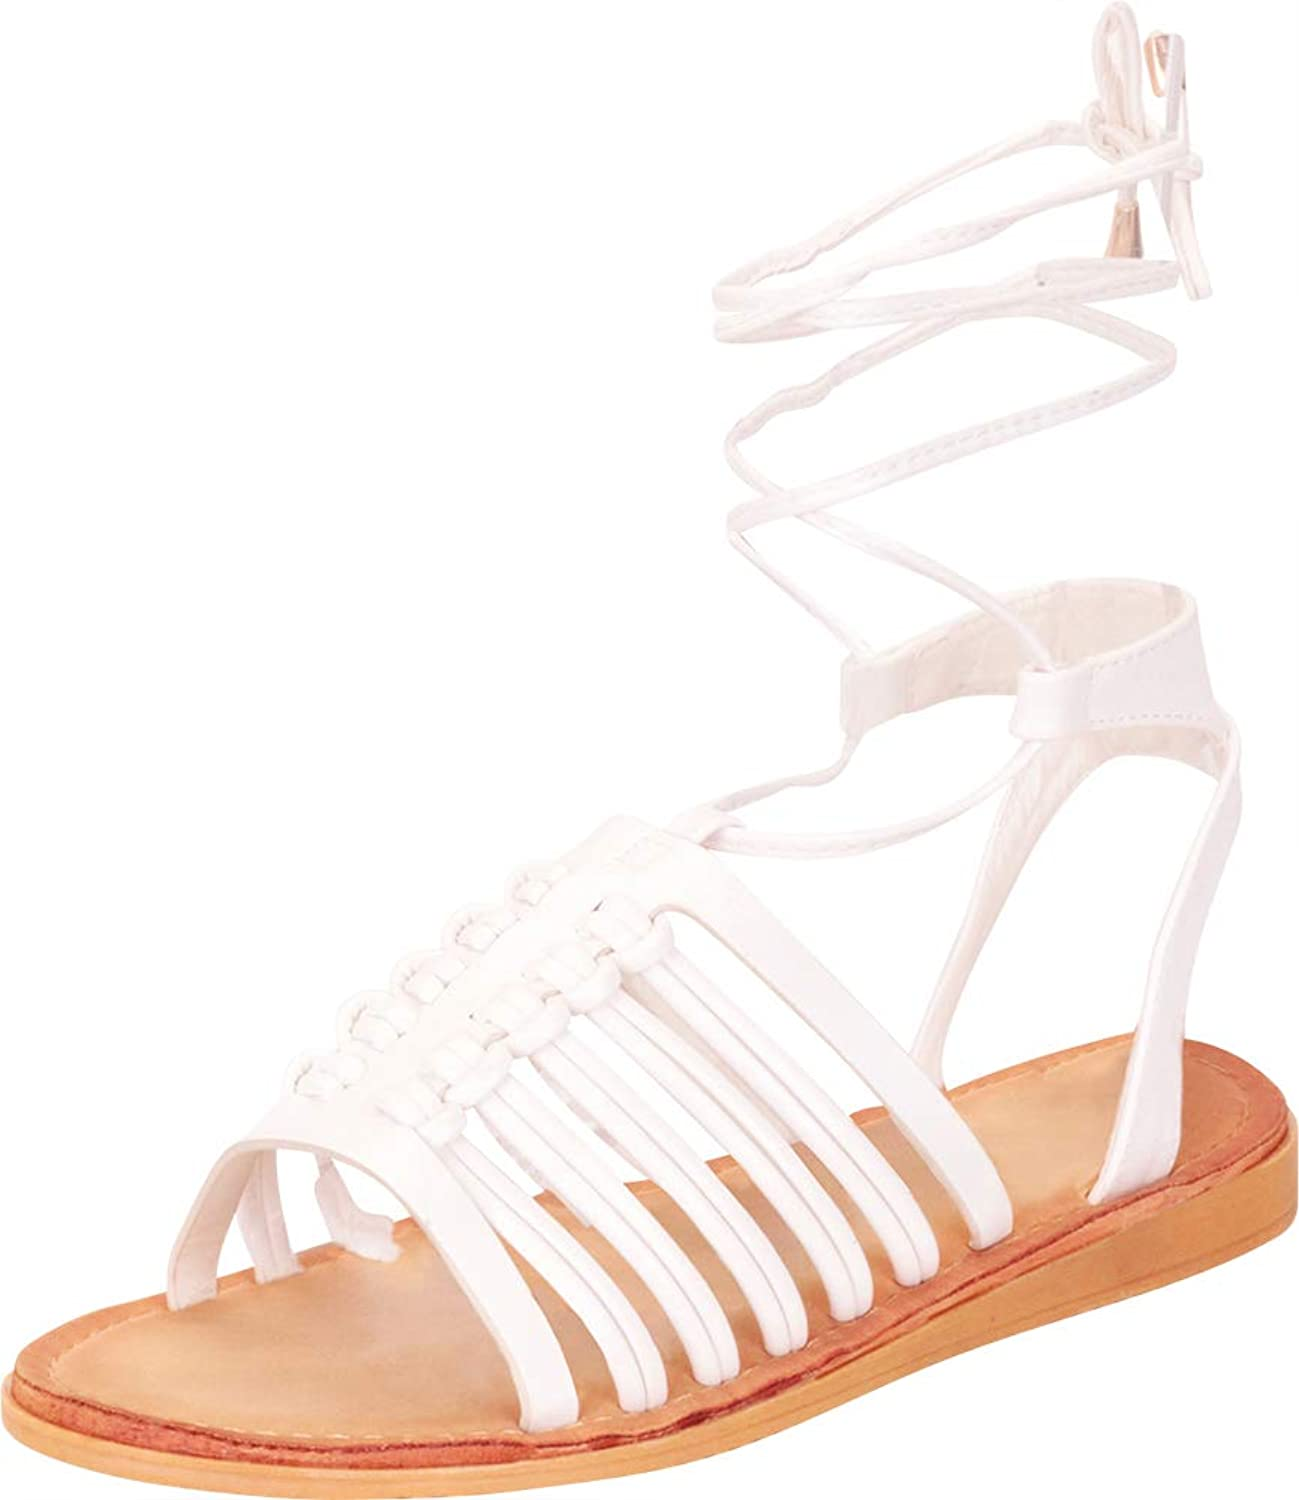 Cambridge Select Women's Strappy Caged Crisscross Ankle Tie Flat Gladiator Sandal